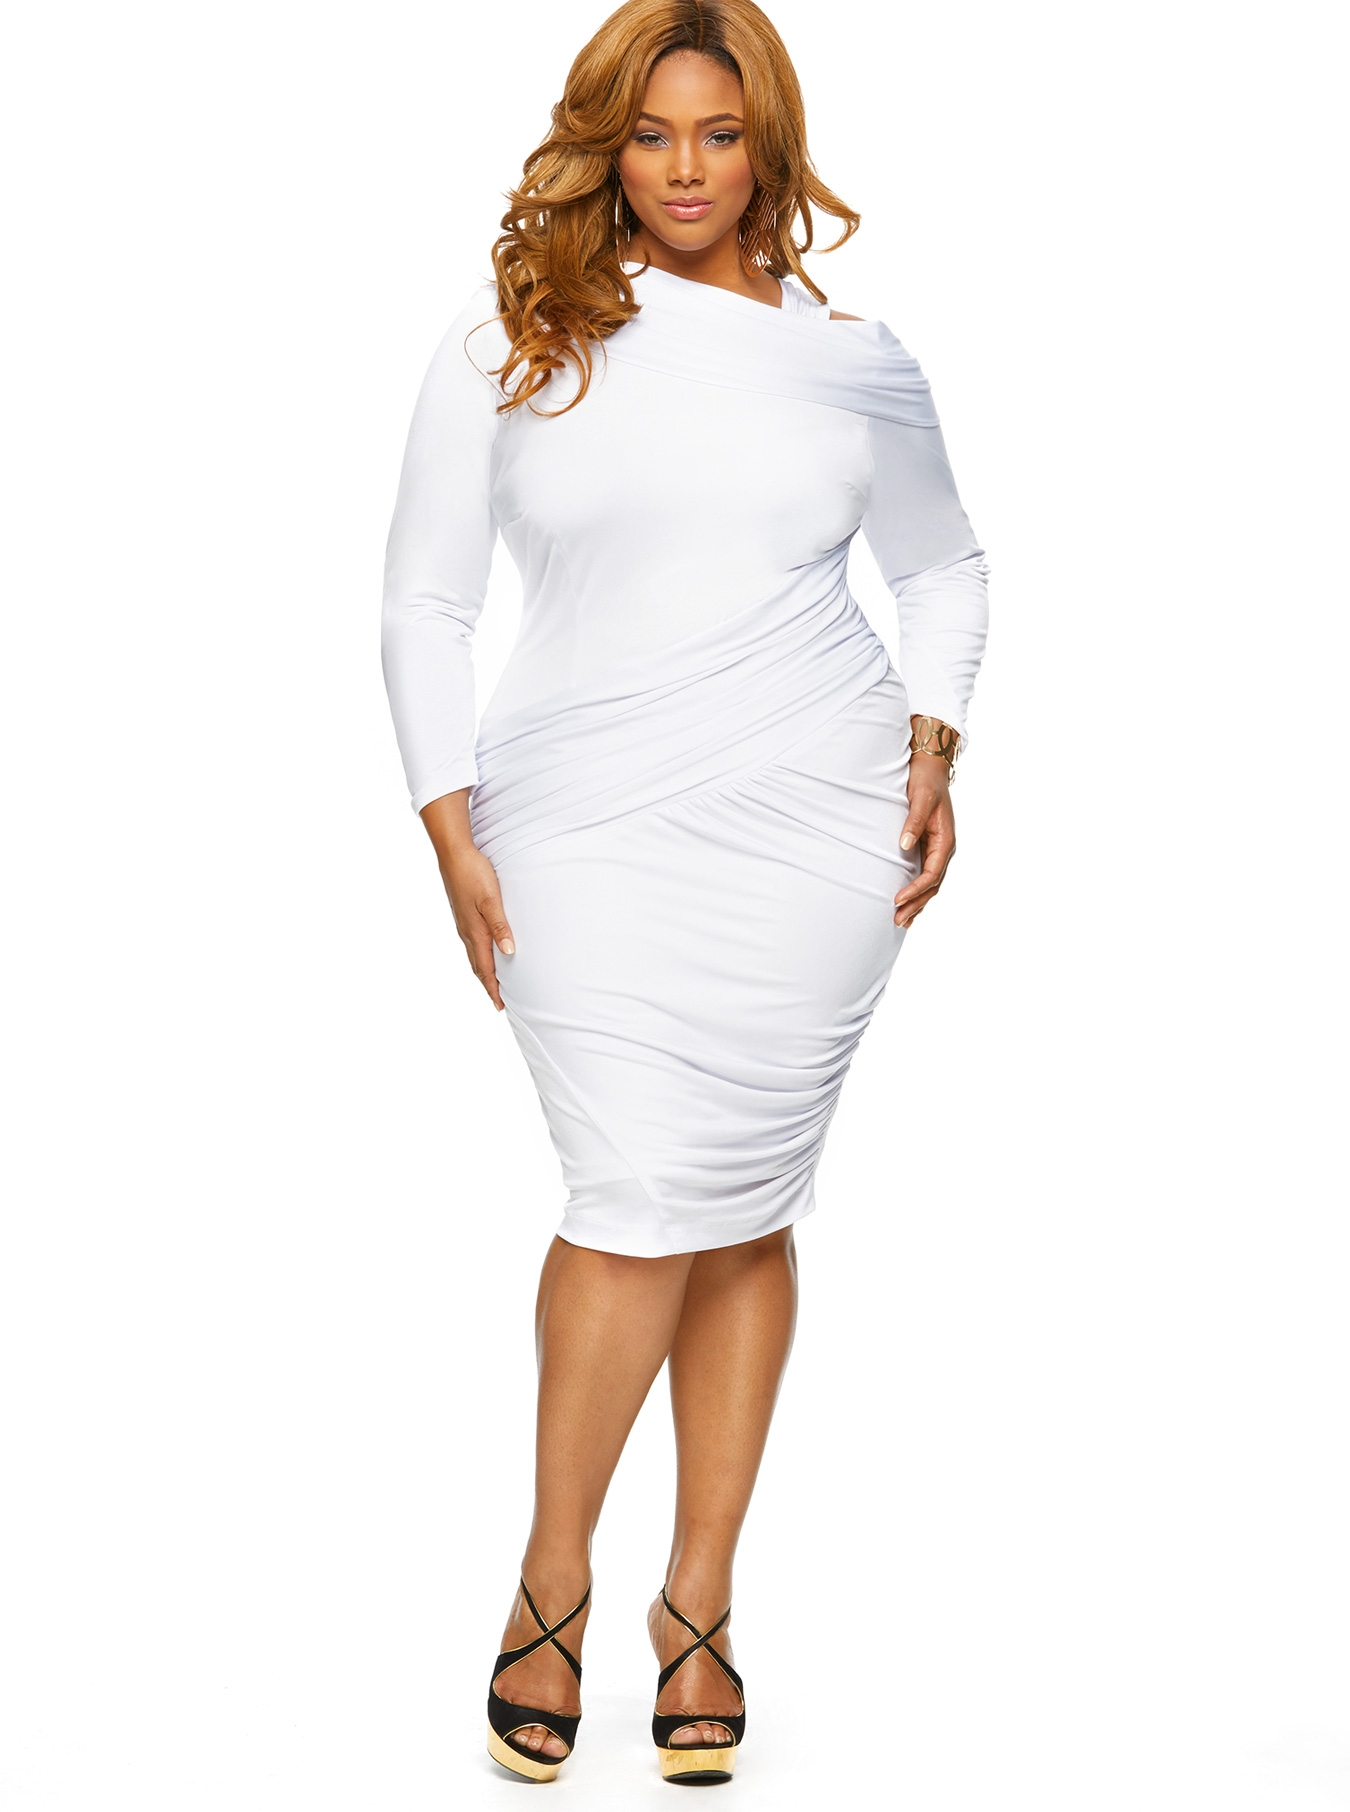 Plus Size White Outfits